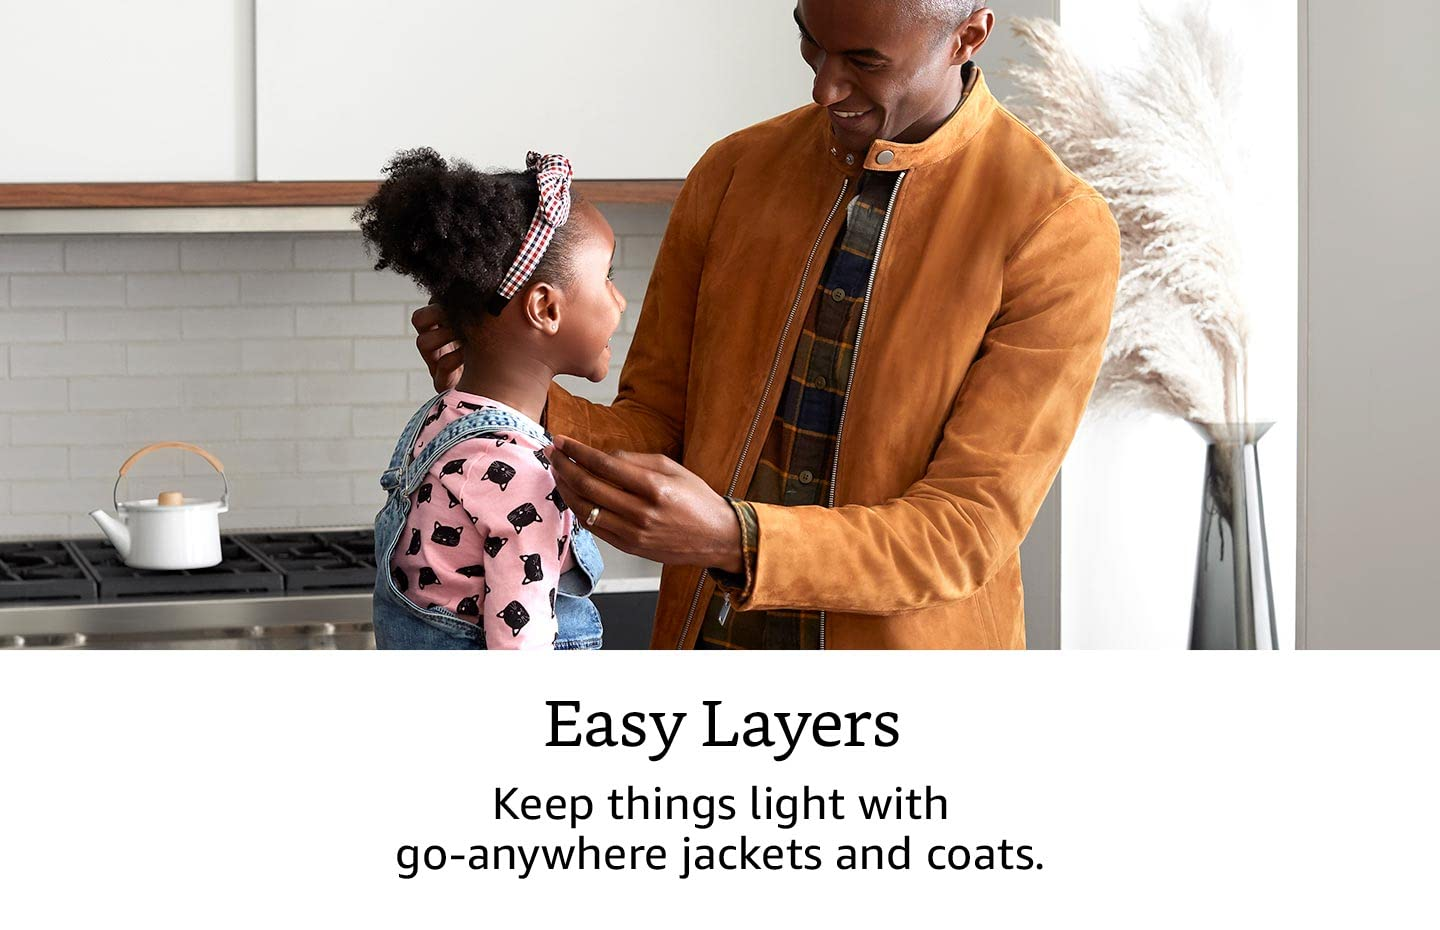 Easy Layers